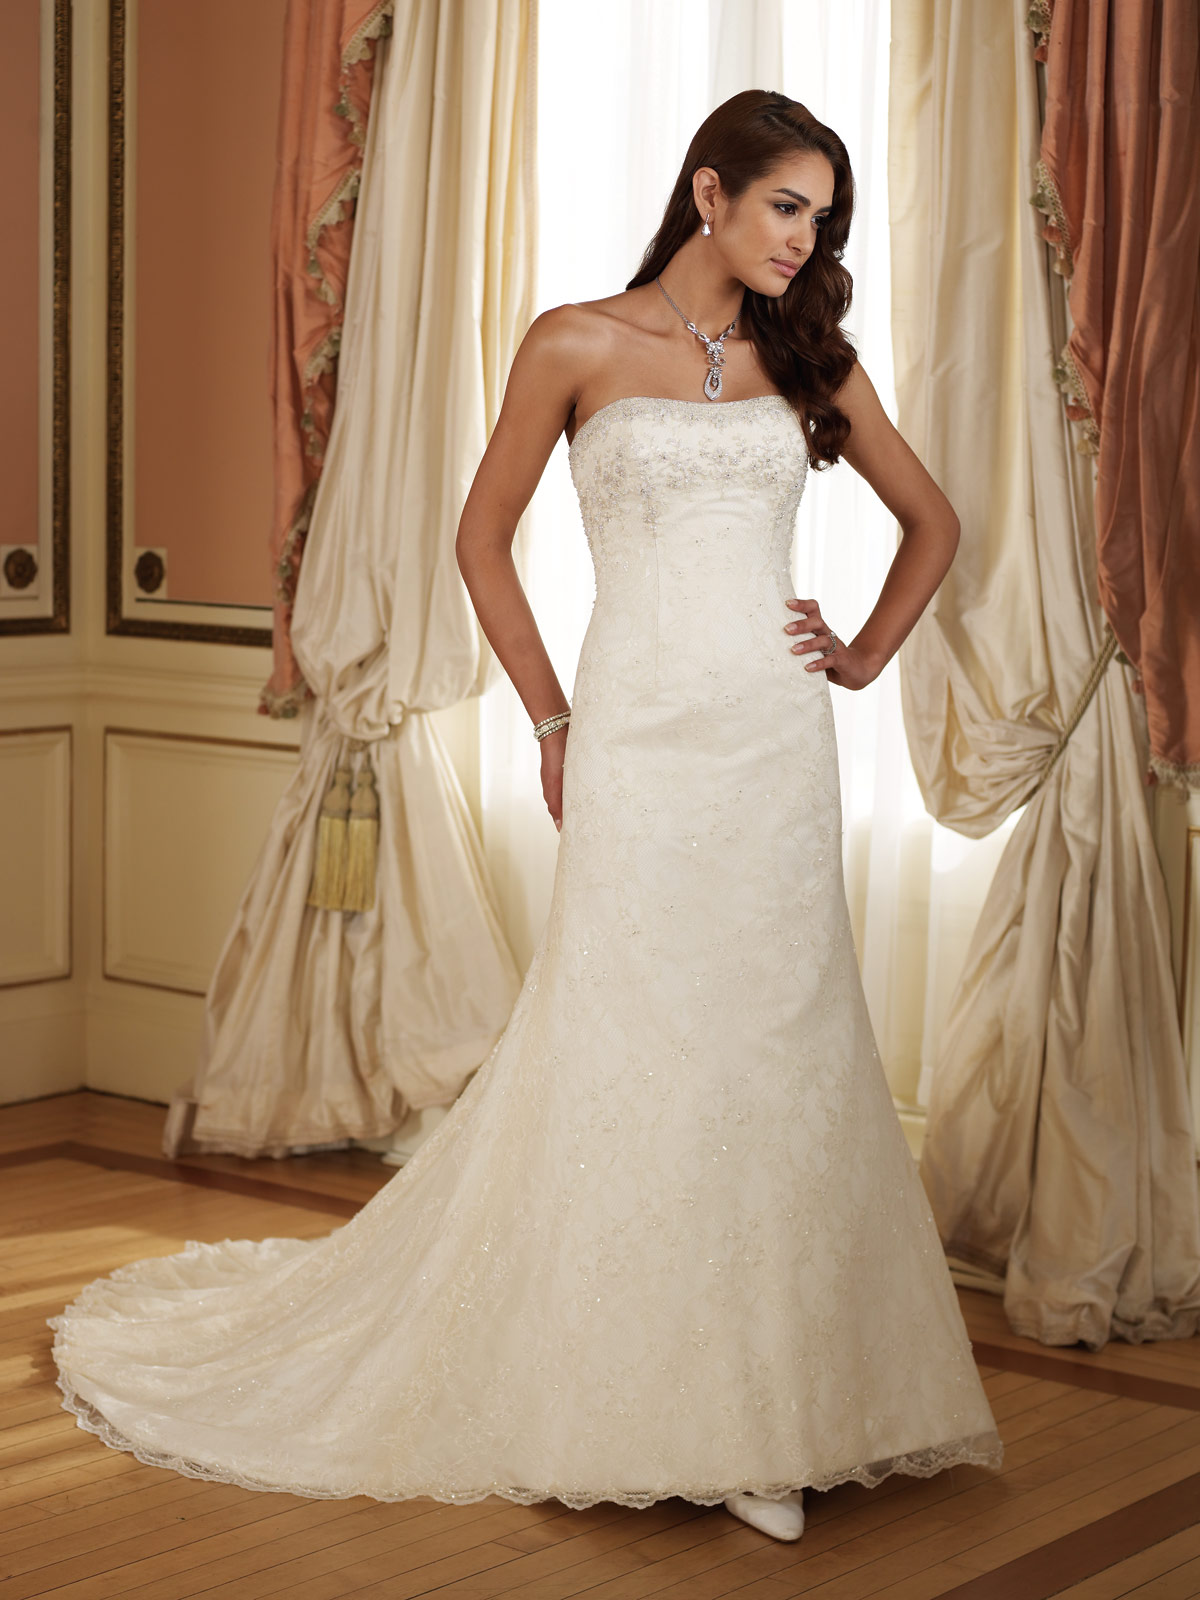 Wedding dresses set 2 hairstyle qoutes tattoo for Where to get a wedding dress